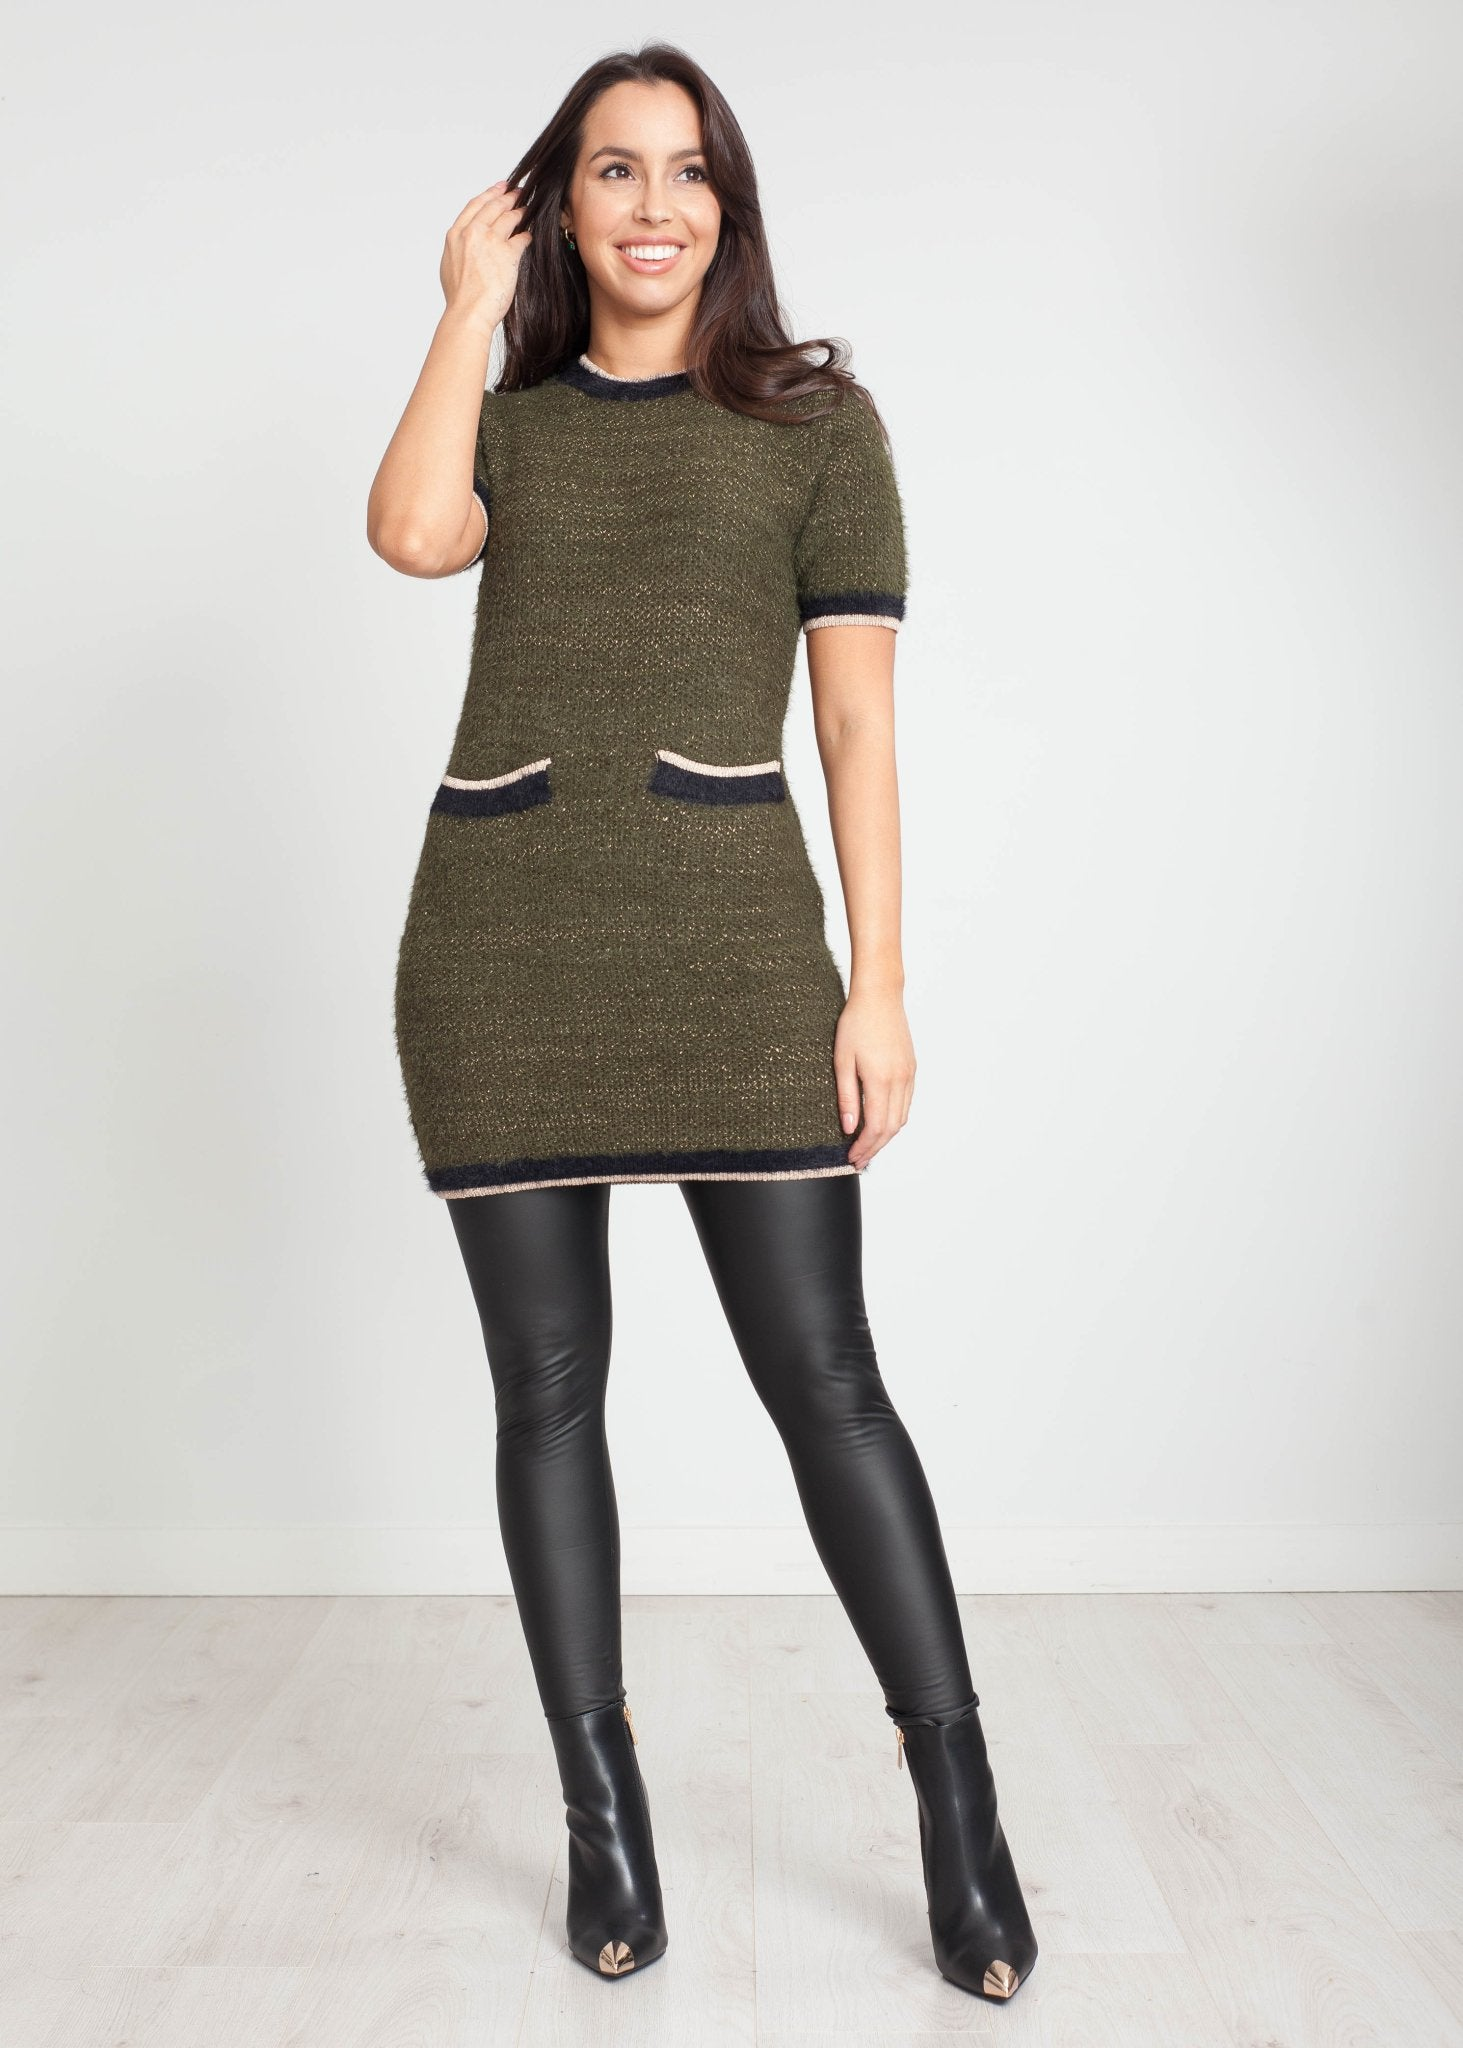 Priya Knit Mini Dress in Khaki - The Walk in Wardrobe